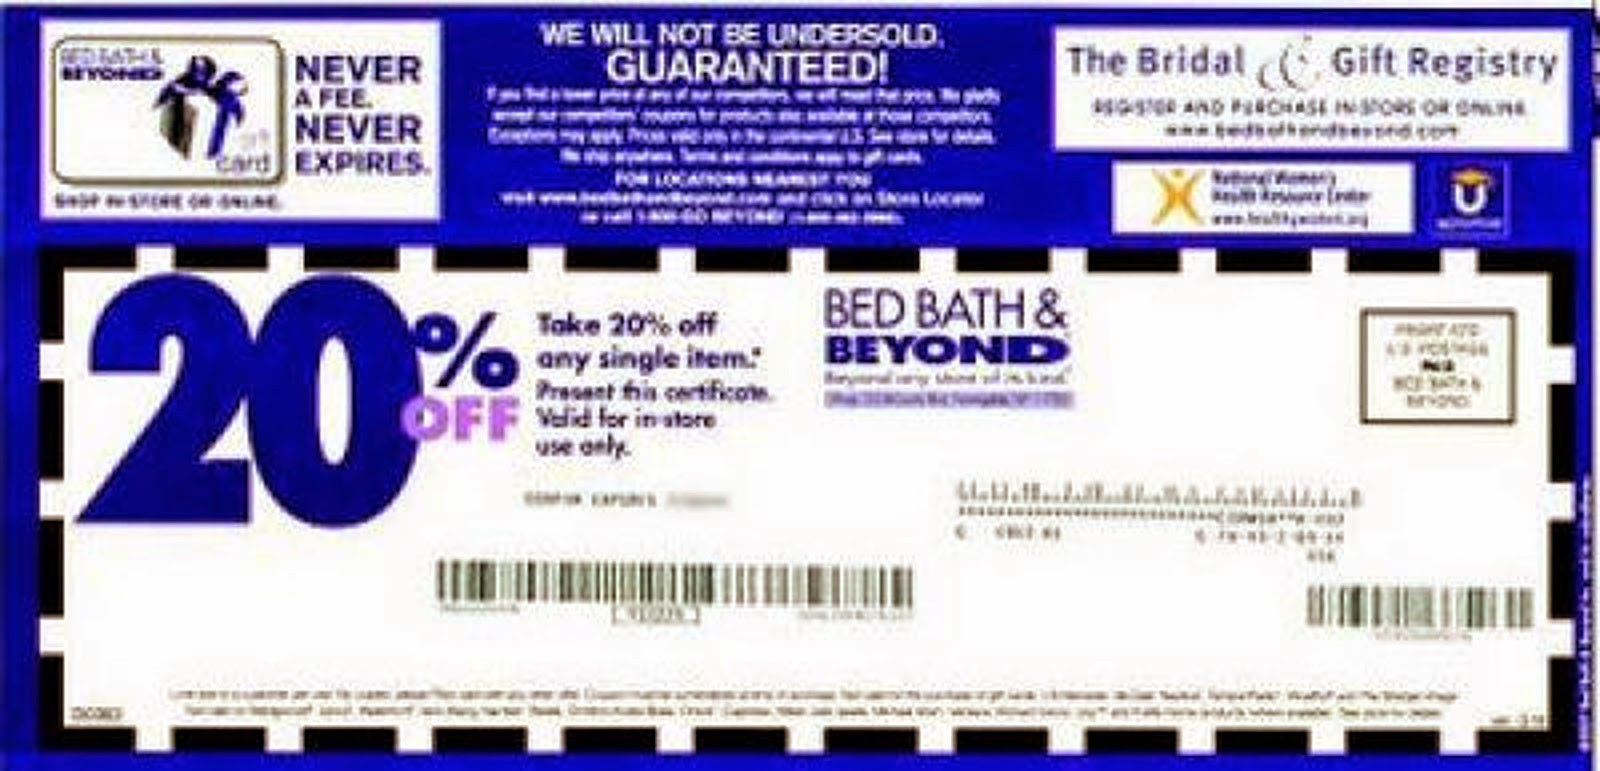 Bed Bath And Beyond Coupons 20 Off Printable Coupon - Mysembalun - Free Printable Bed Bath And Beyond 20 Off Coupon